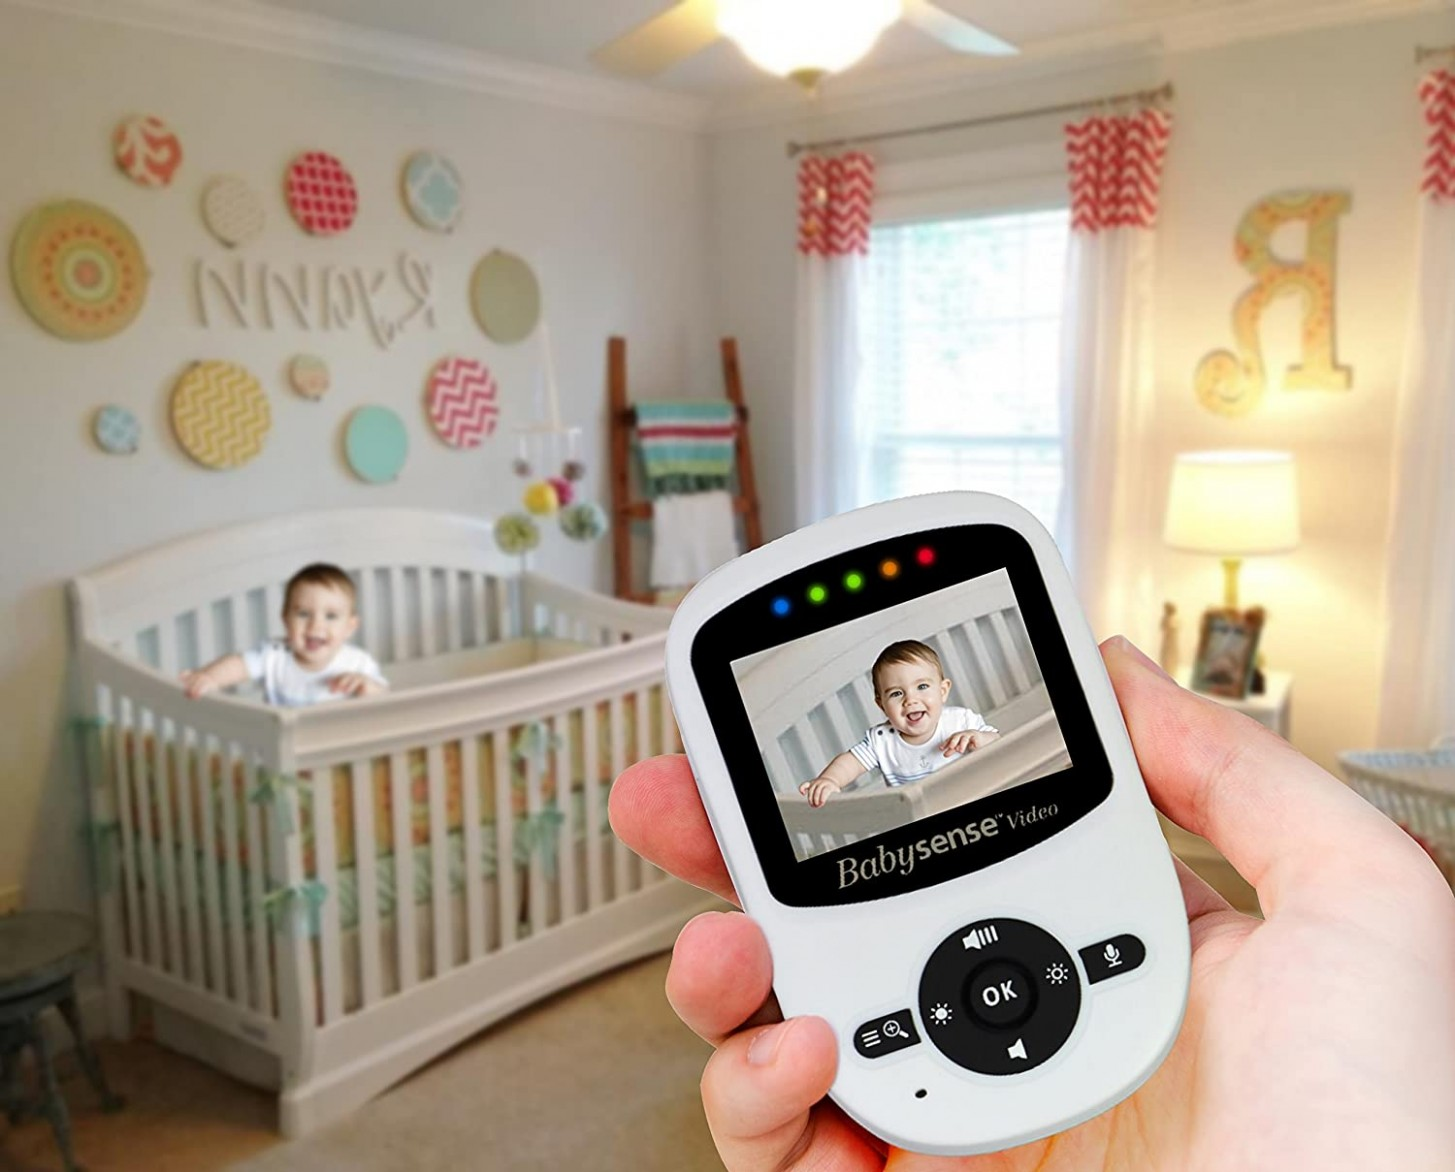 Babysense Video Baby Monitor with LCD Display, Digital Camera, Infrared  Night Vision, Two Way Talk Back, Temperature Monitoring, Lullabies, Long  Range  - Baby Room Video